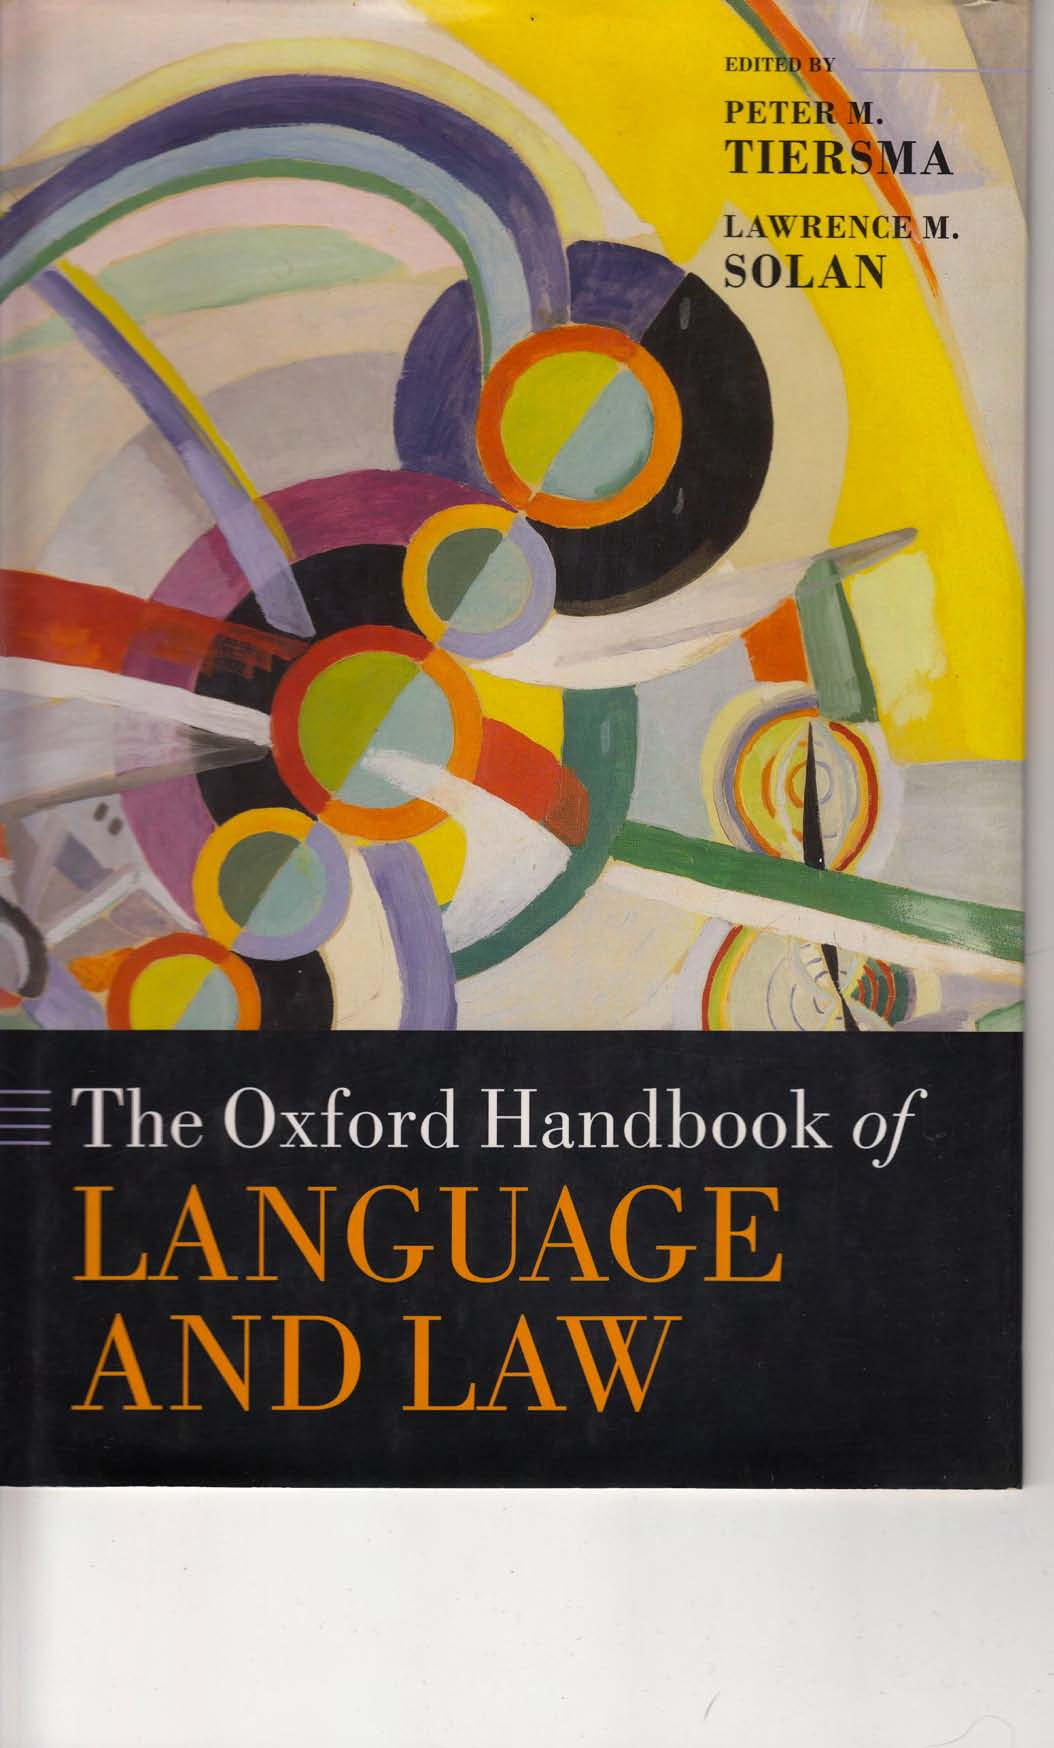 [The Oxford Handbook of Language & Law]